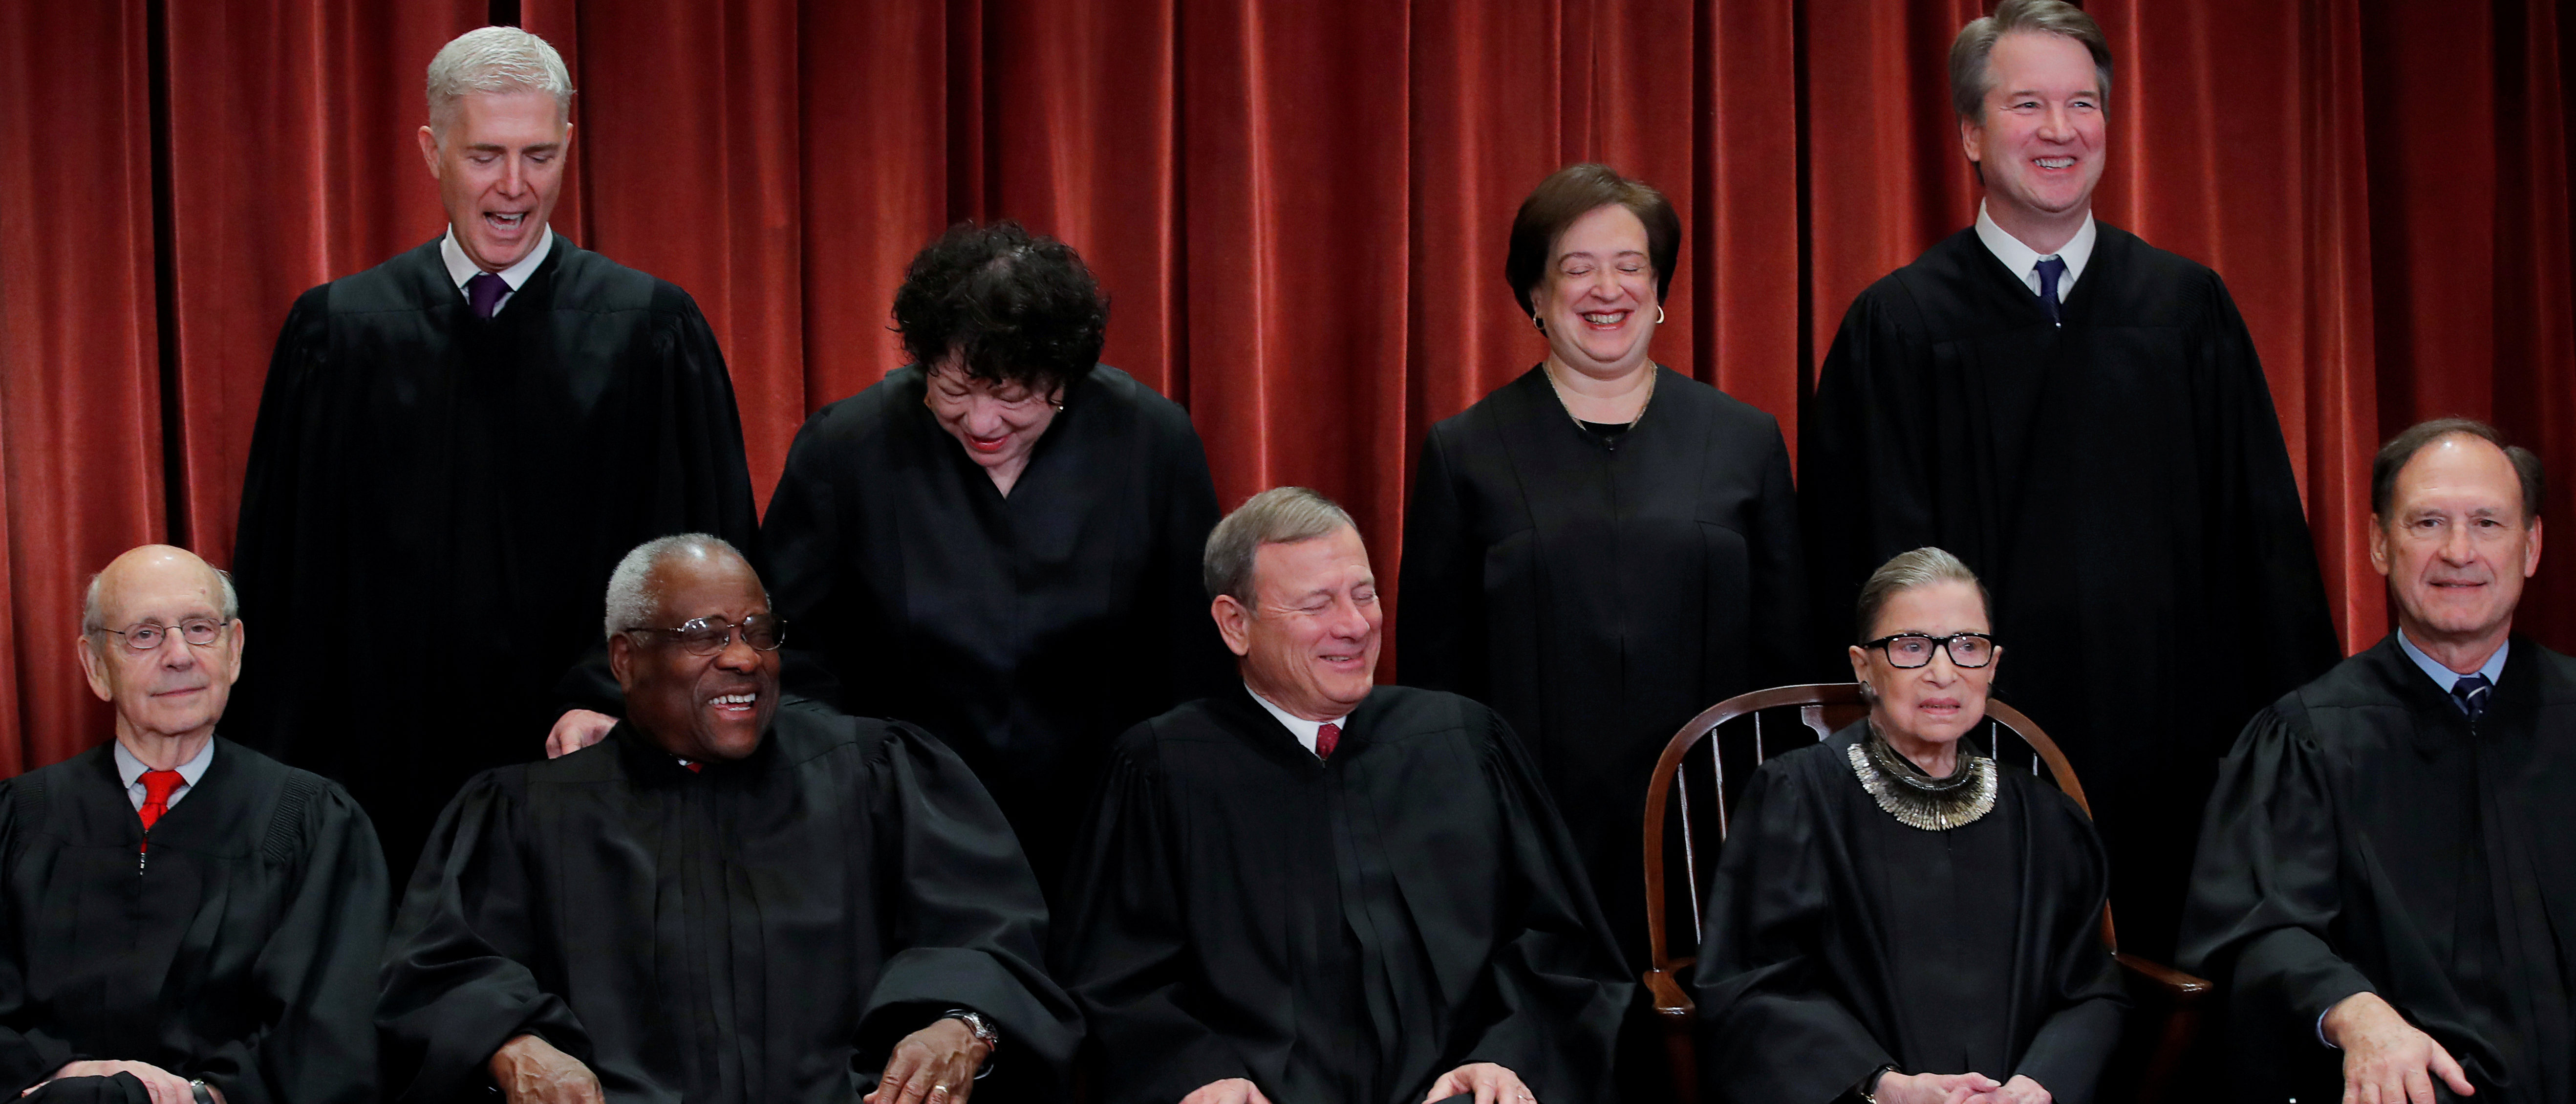 U.S. Supreme Court justices pose for their group portrait at the Supreme Court in Washington, U.S., November 30, 2018. Seated (L-R): Associate Justice Stephen Breyer, Associate Justice Clarence Thomas, Chief Justice of the United States John G. Roberts, Associate Justice Ruth Bader Ginsburg and Associate Justice Samuel Alito, Jr. Standing behind (L-R): Associate Justice Neil Gorsuch, Associate Justice Sonia Sotomayor, Associate Justice Elena Kagan and Associate Justice Brett M. Kavanaugh. REUTERS/Jim Young.